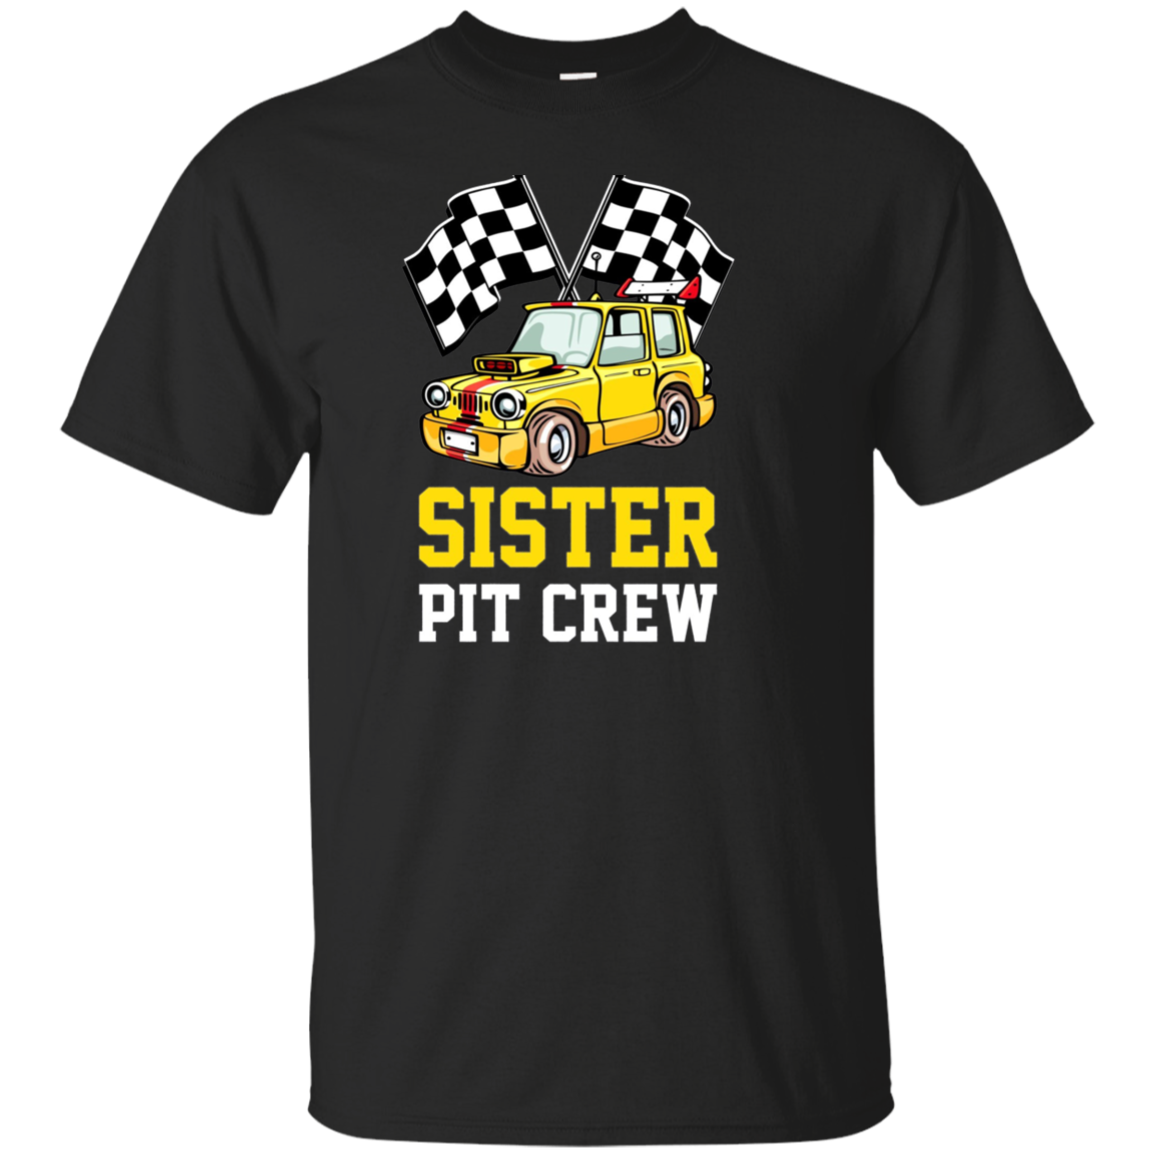 Pit Crew SISTER Back Print Long Sleeve T-Shirt Race